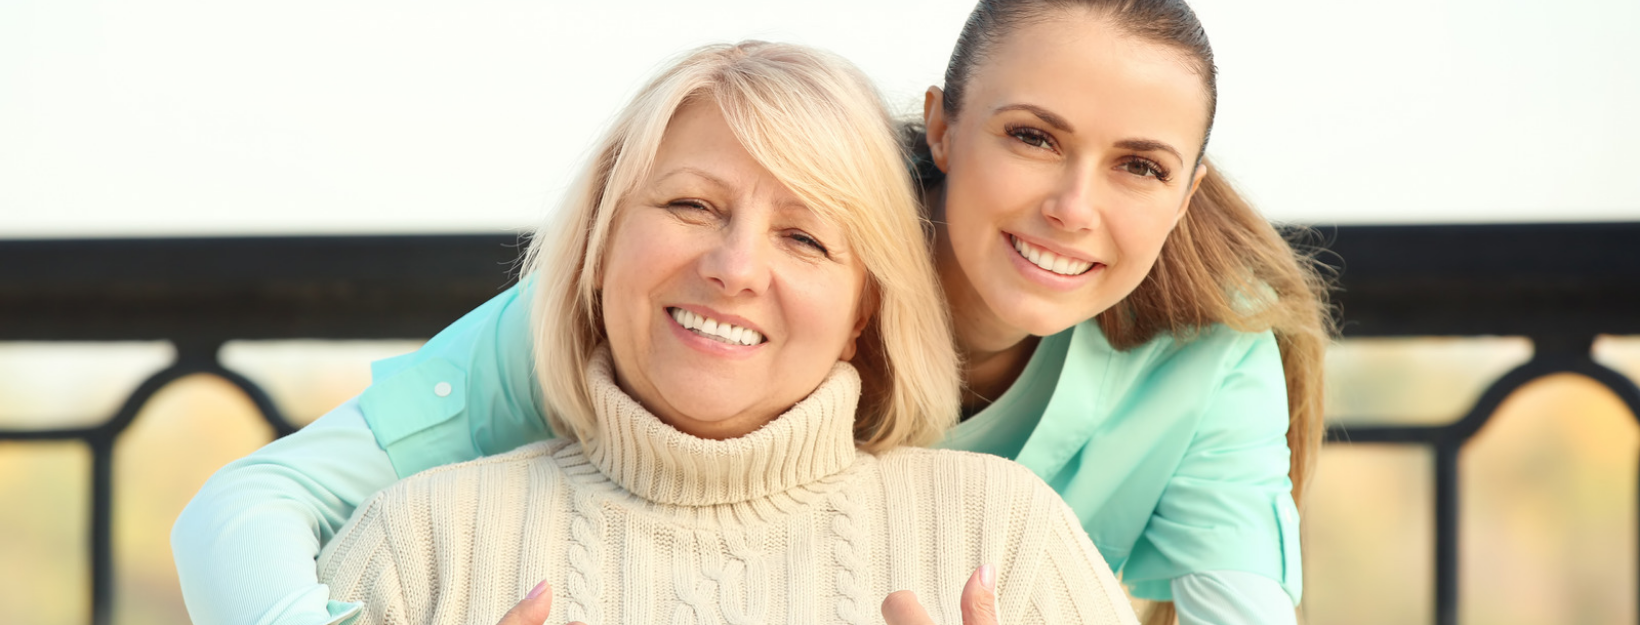 an elderly woan and young woman smiling together